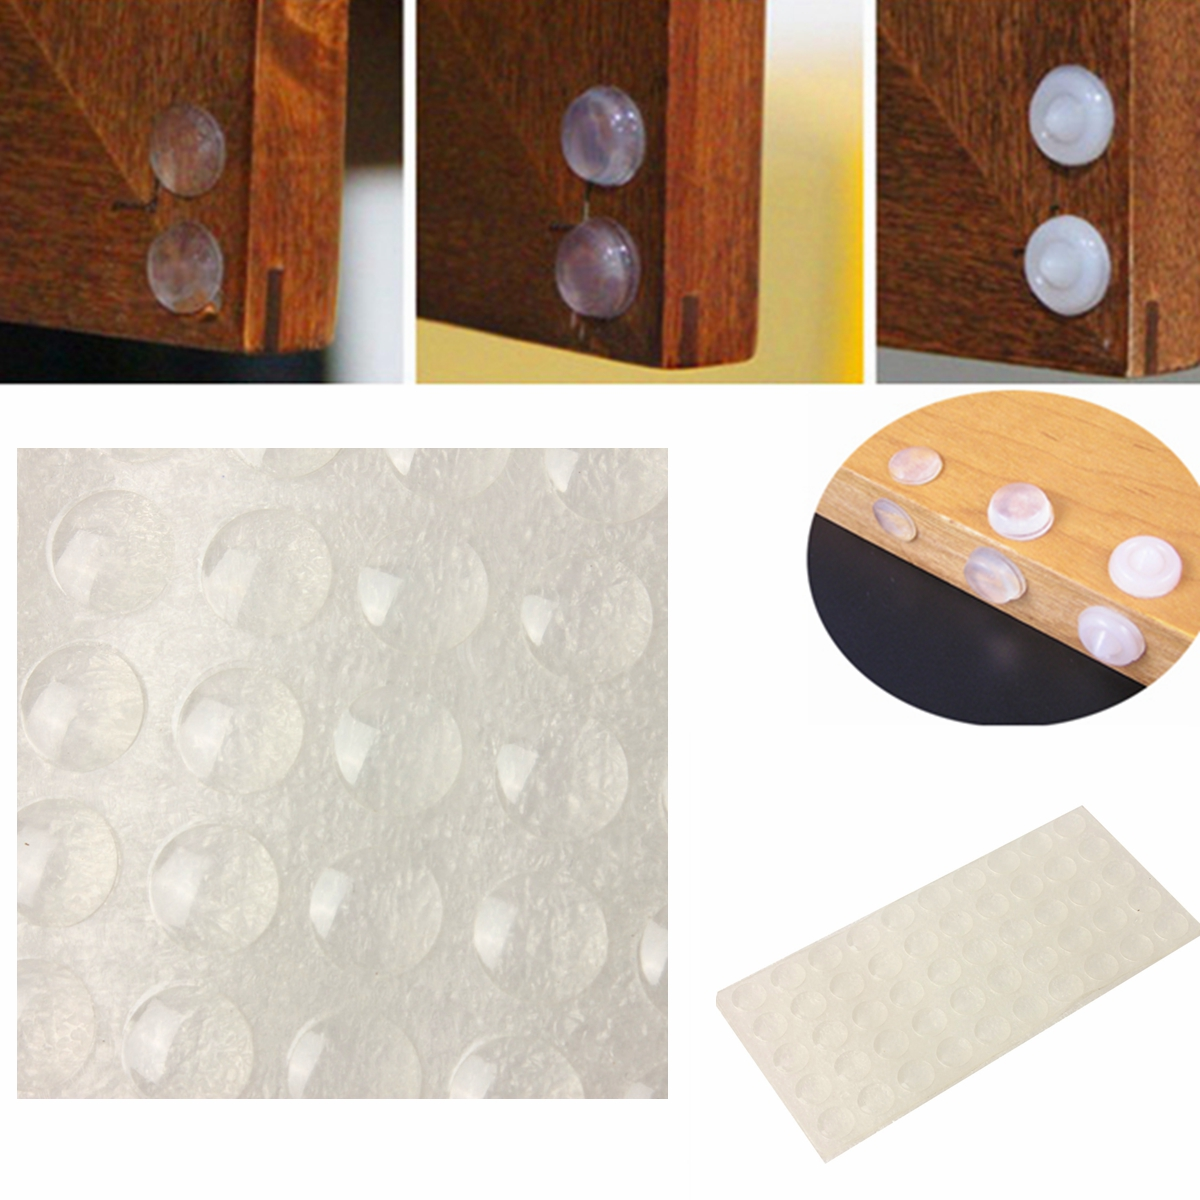 50 100pc self adhesive rubber feet small clear bumpers door pad cupboard drawer ebay - Drawer bumper pads ...